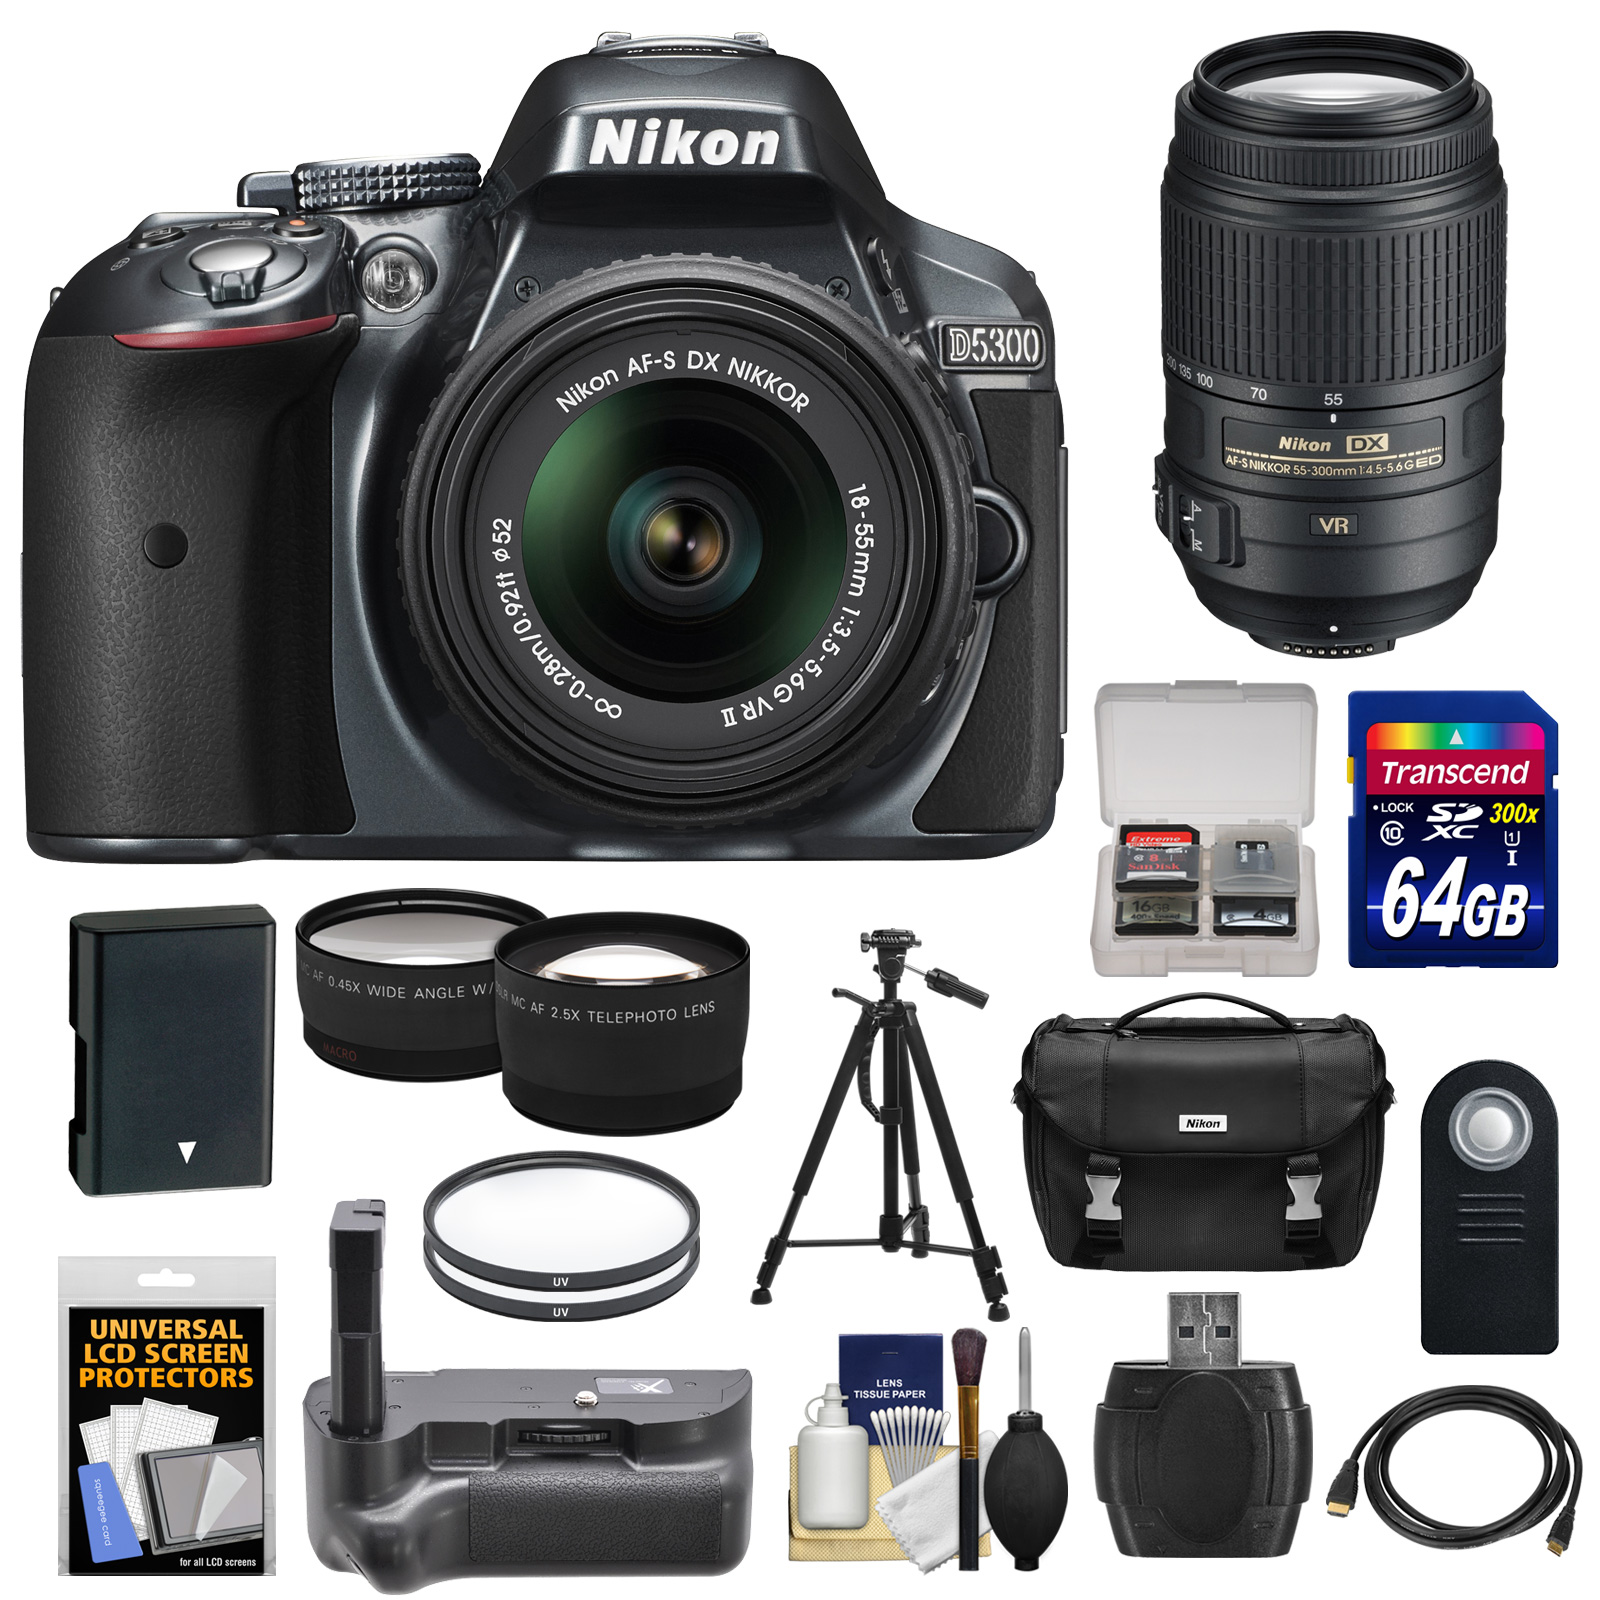 Nikon D5300 Digital SLR Camera & 18-55mm G VR DX II Lens (Grey) with 55-300mm VR Lens   64GB Card   Battery   Case   Grip   Tele/Wide Lens Kit